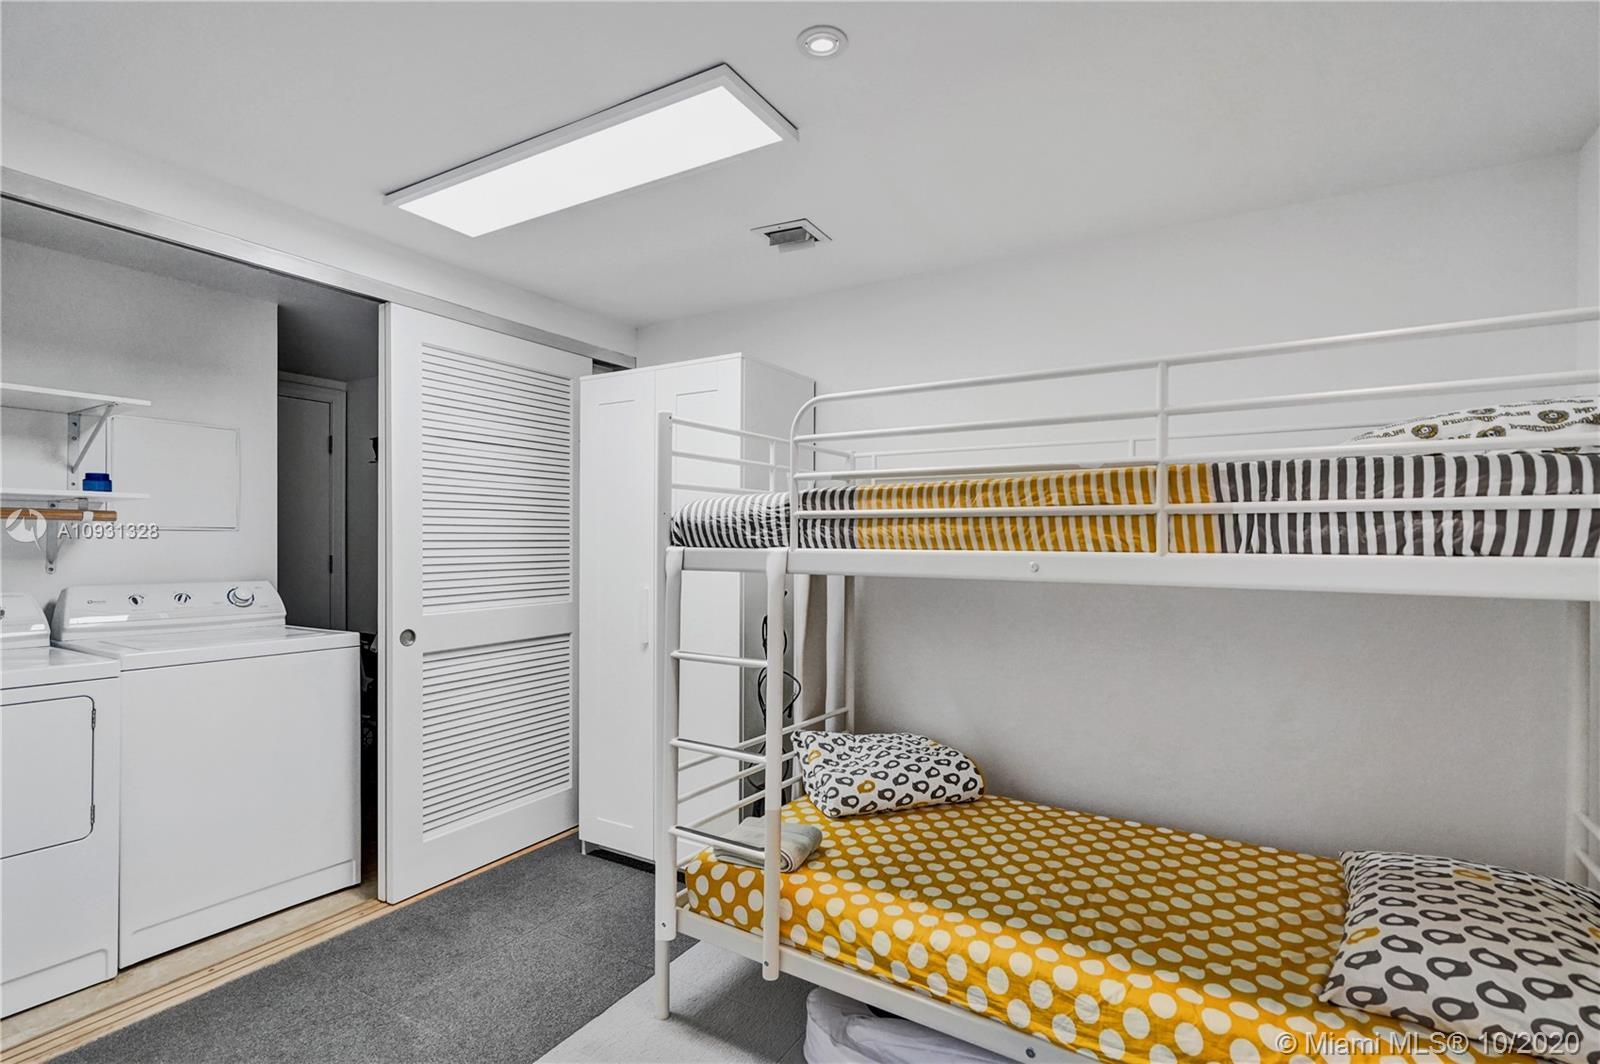 Photo of 20201 Country Club Dr #2407, Aventura, Florida, 33180 - Balcony facing the lake.